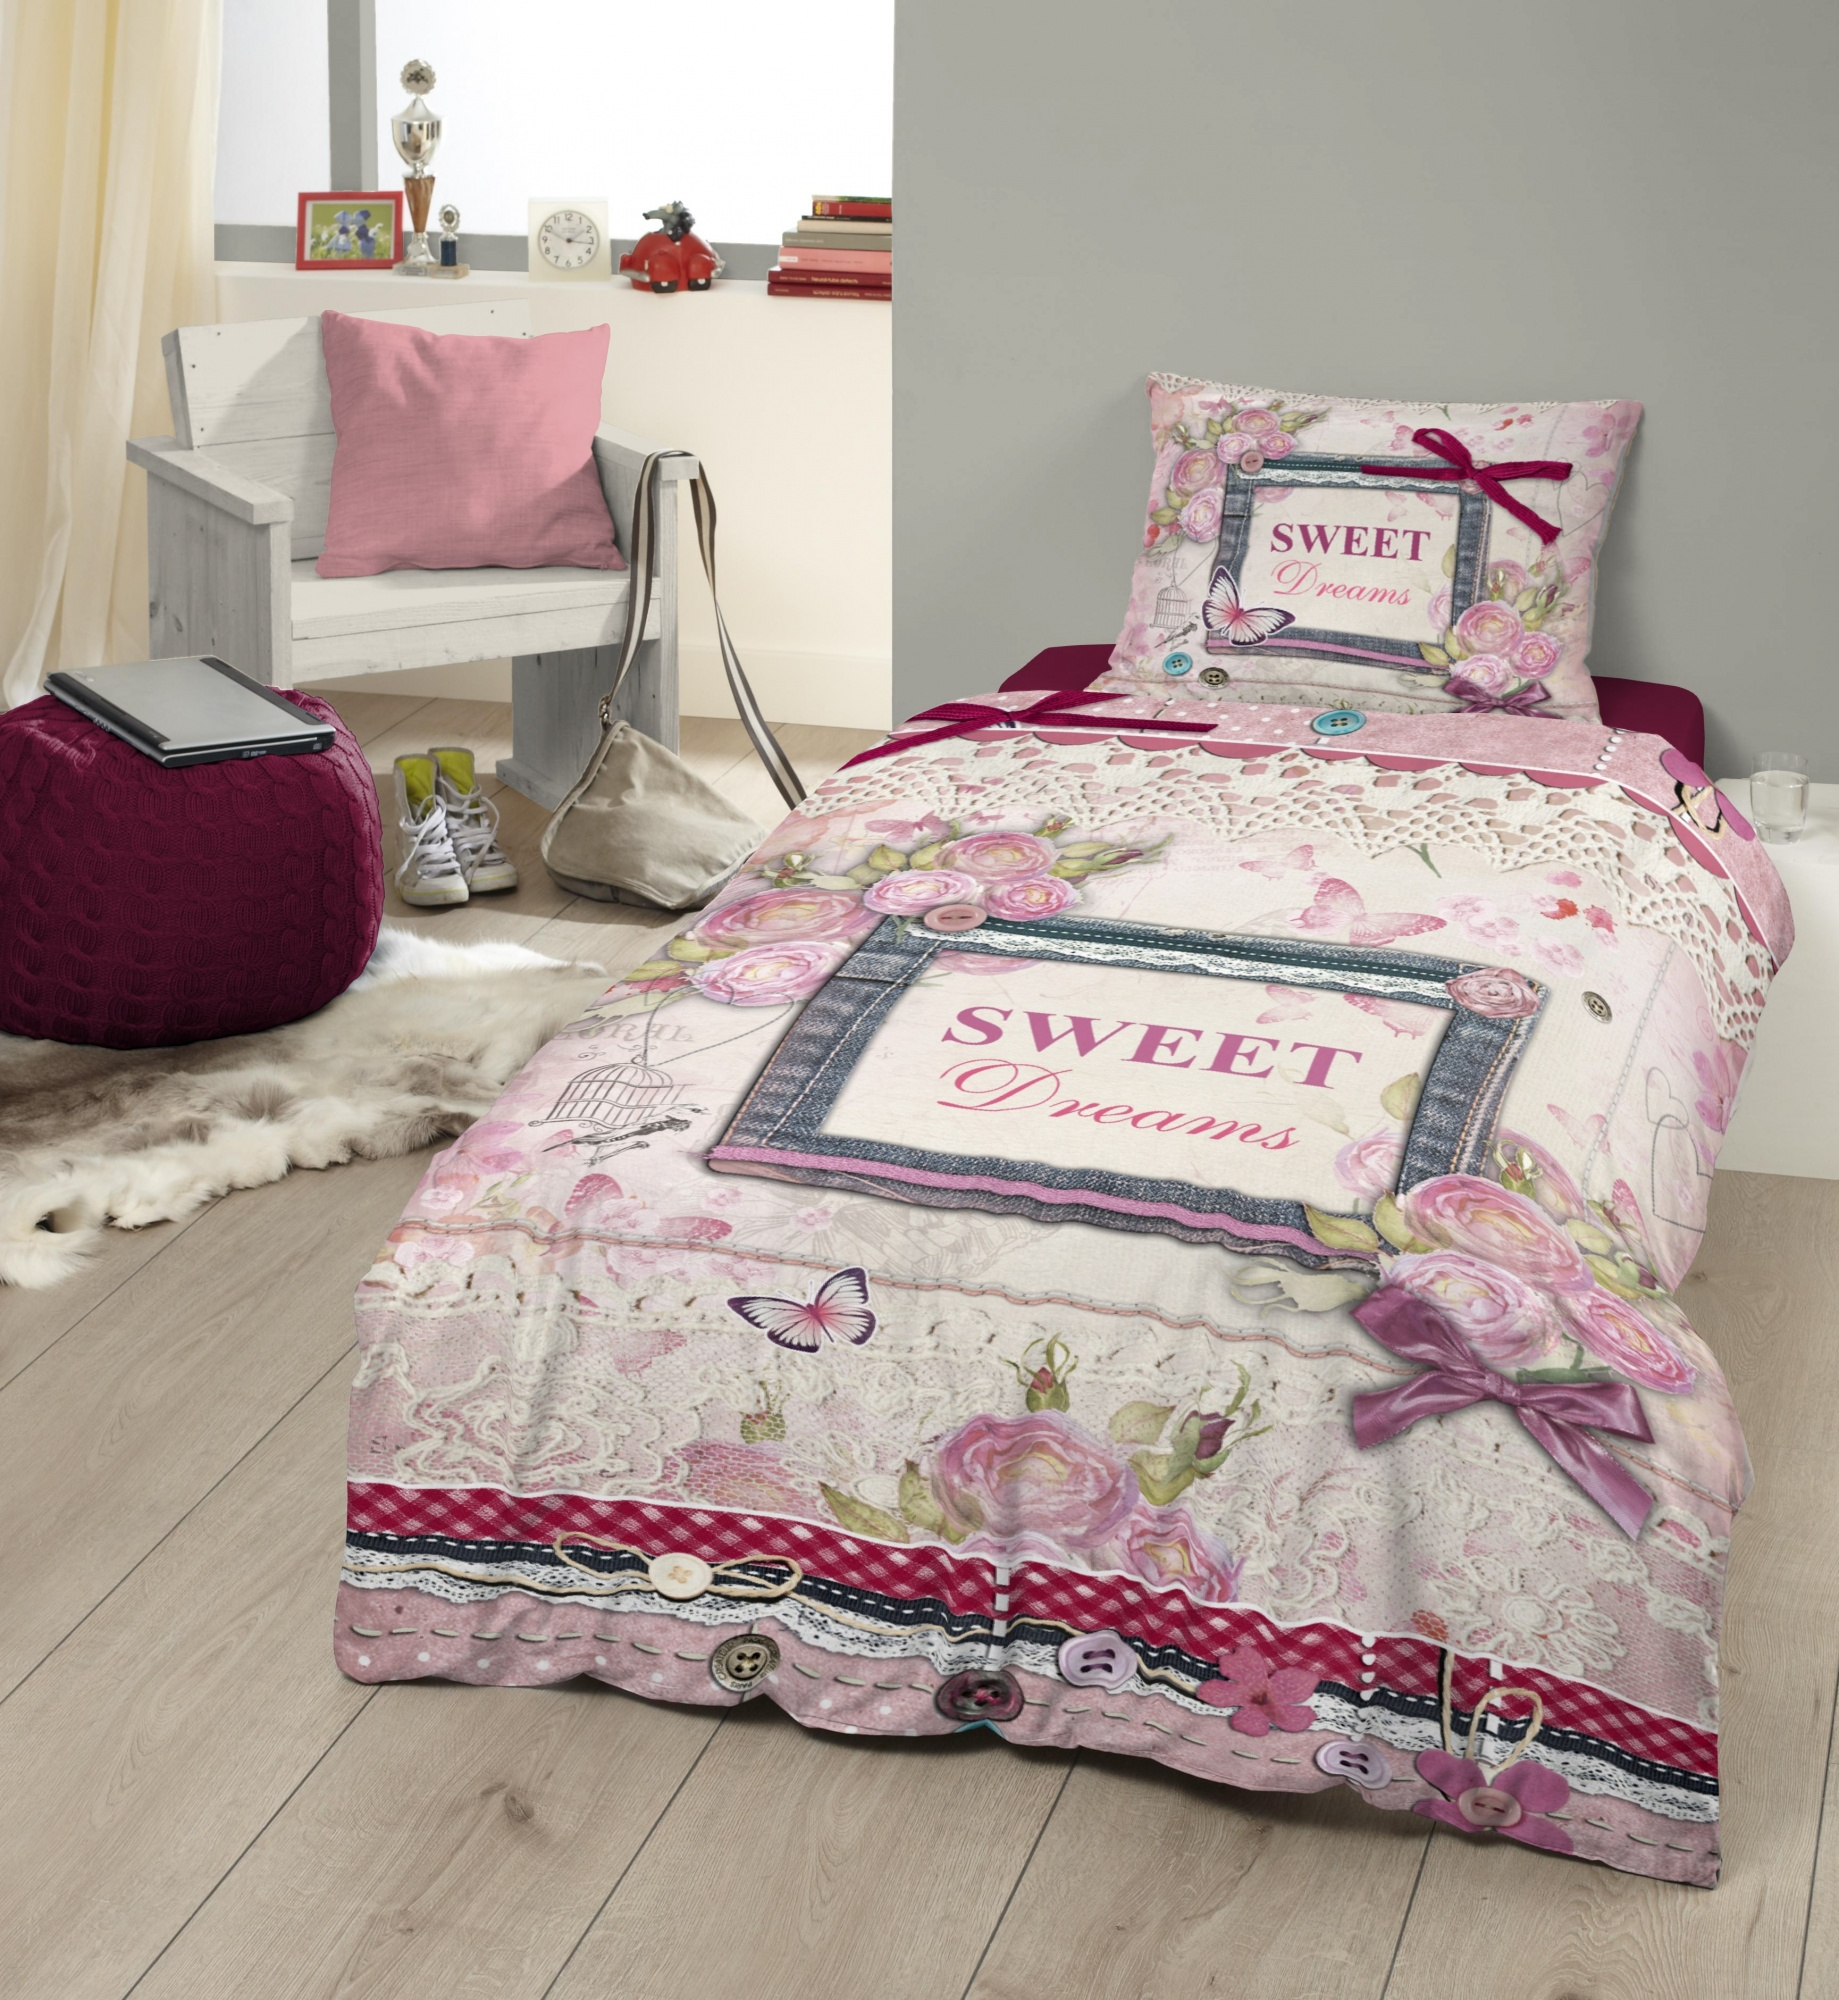 Bettdecken 220 Lang Sweet Dreams Bettdecke 140 X 200 220 Cm Rosa